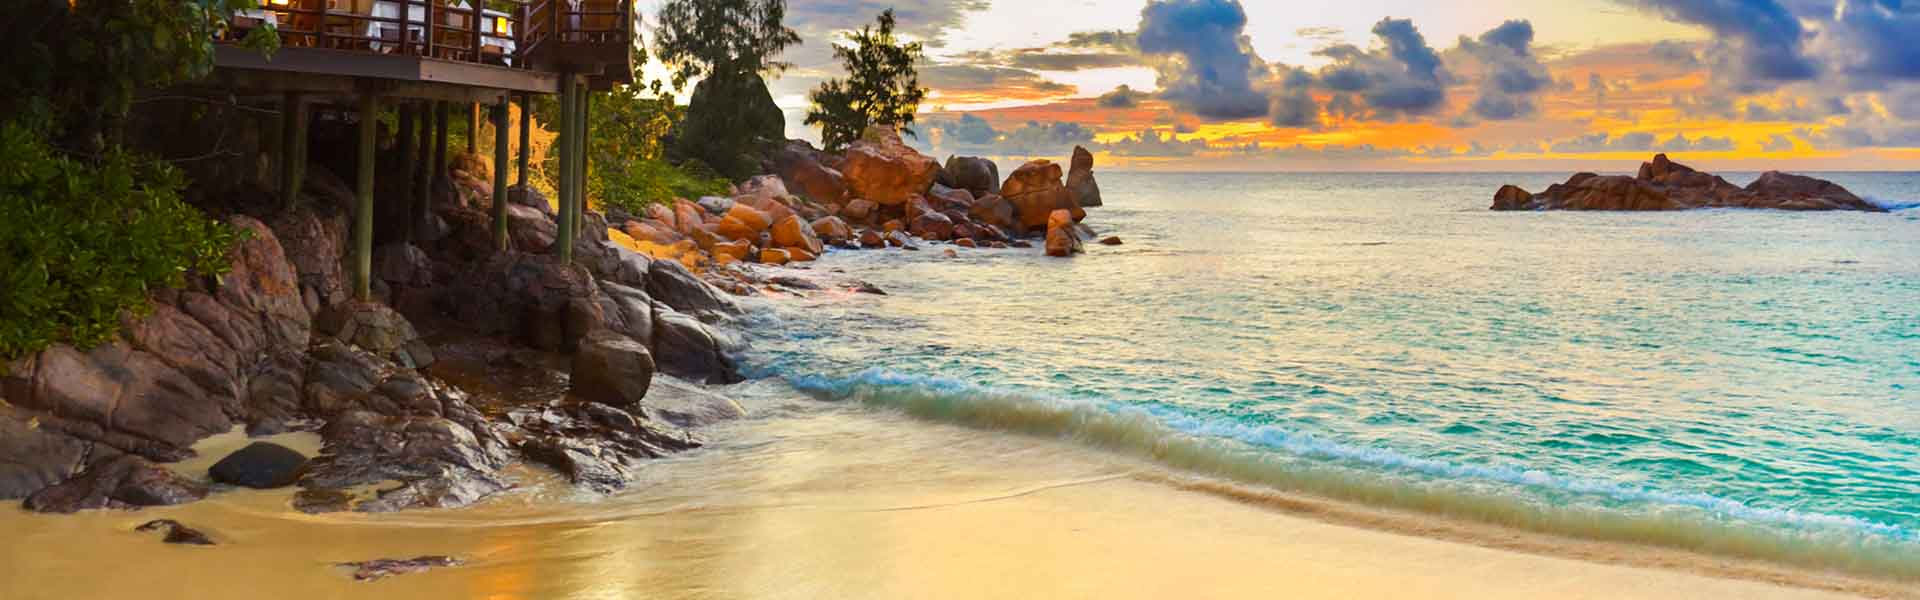 5 little-known Caribbean islands